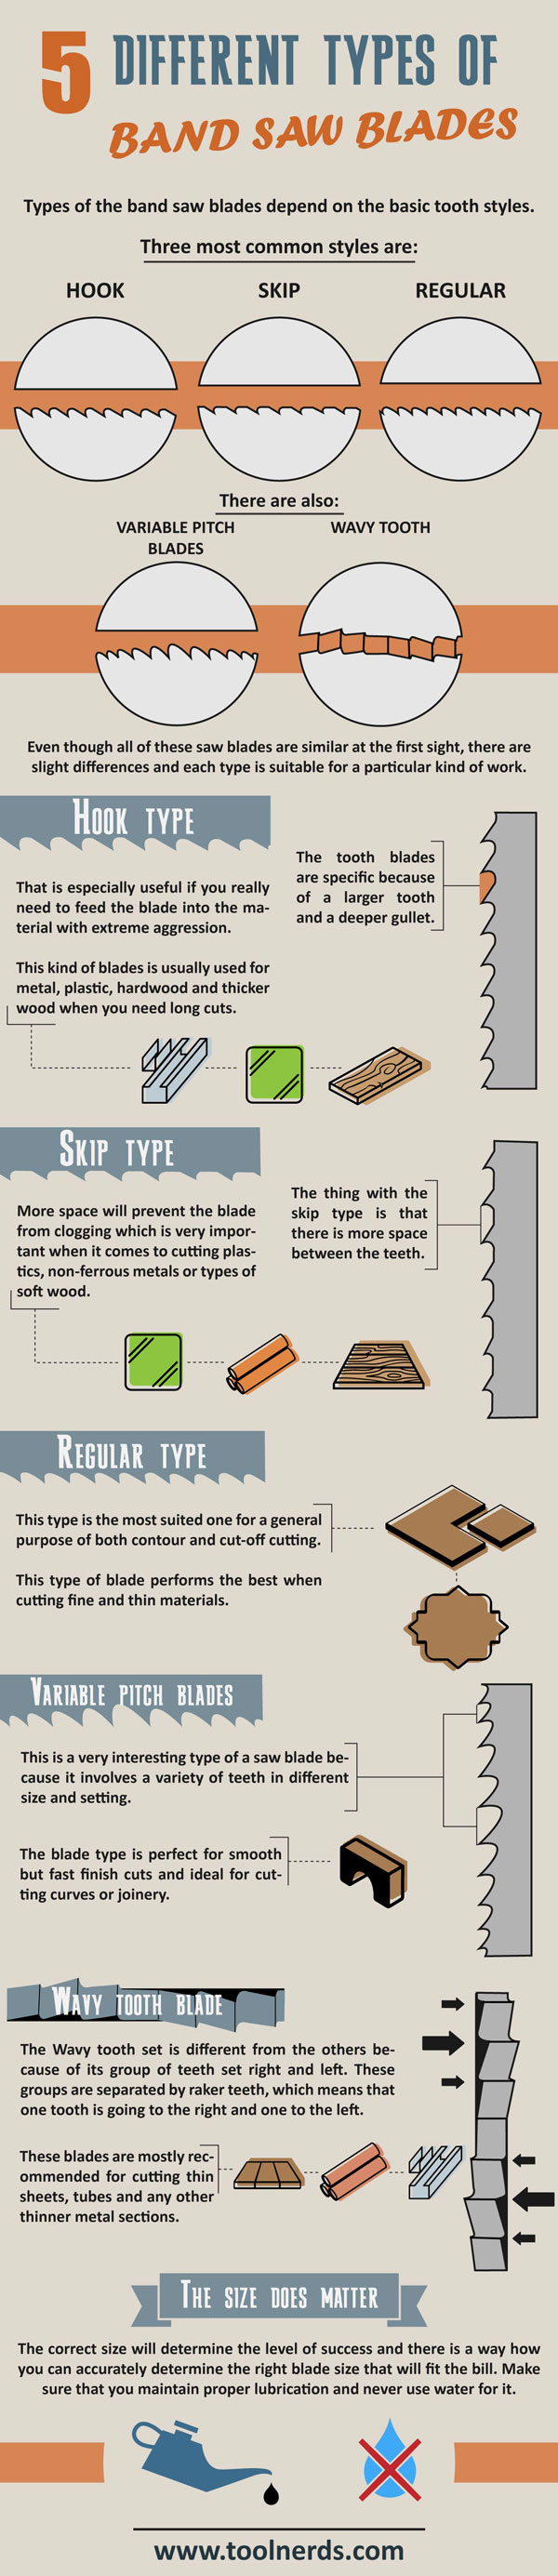 5 Different Types of Band Saw Blades Infographic